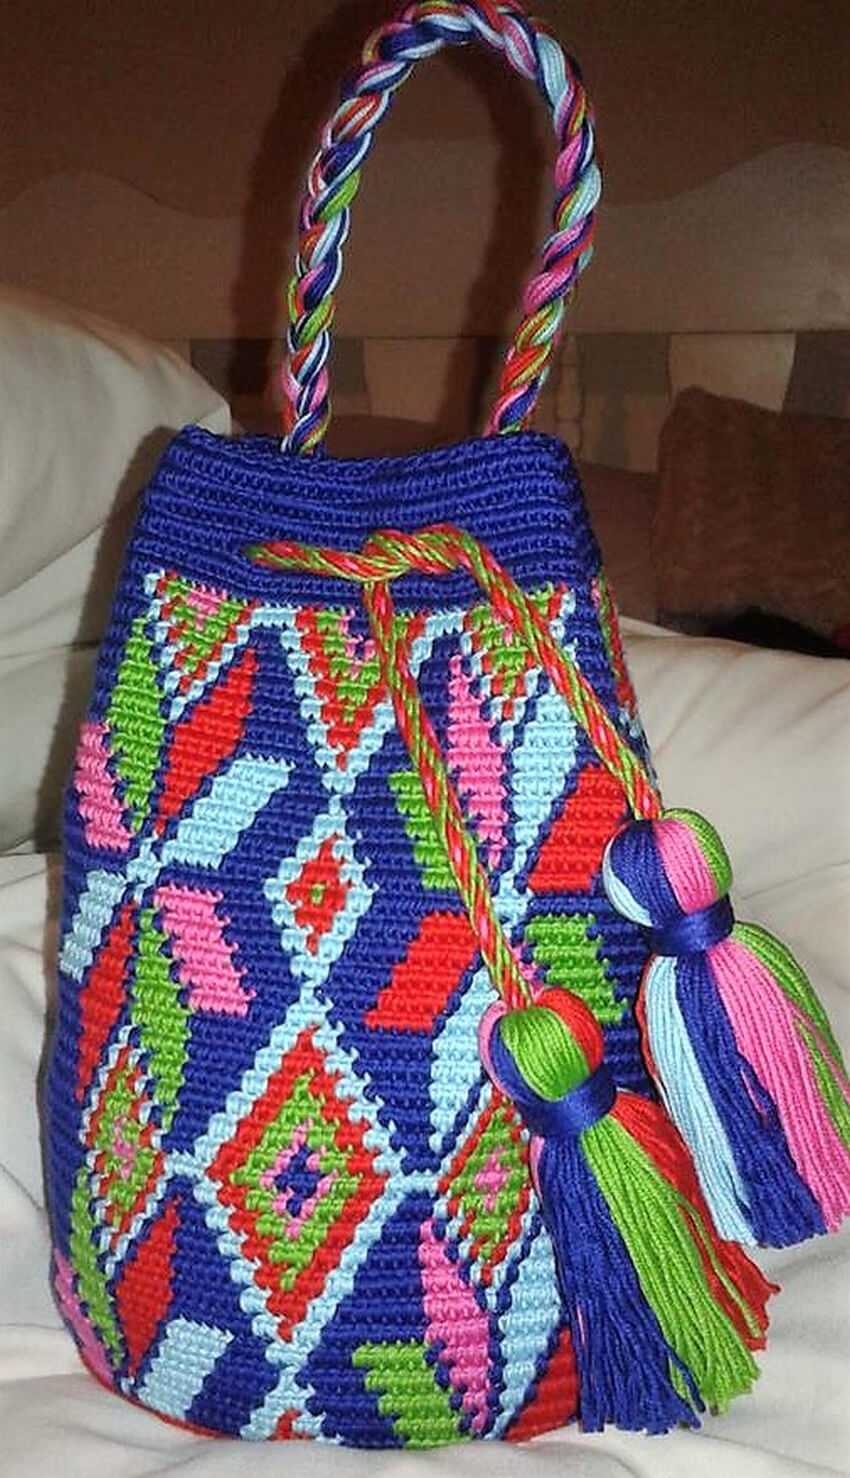 crocheted bag design ideas 11